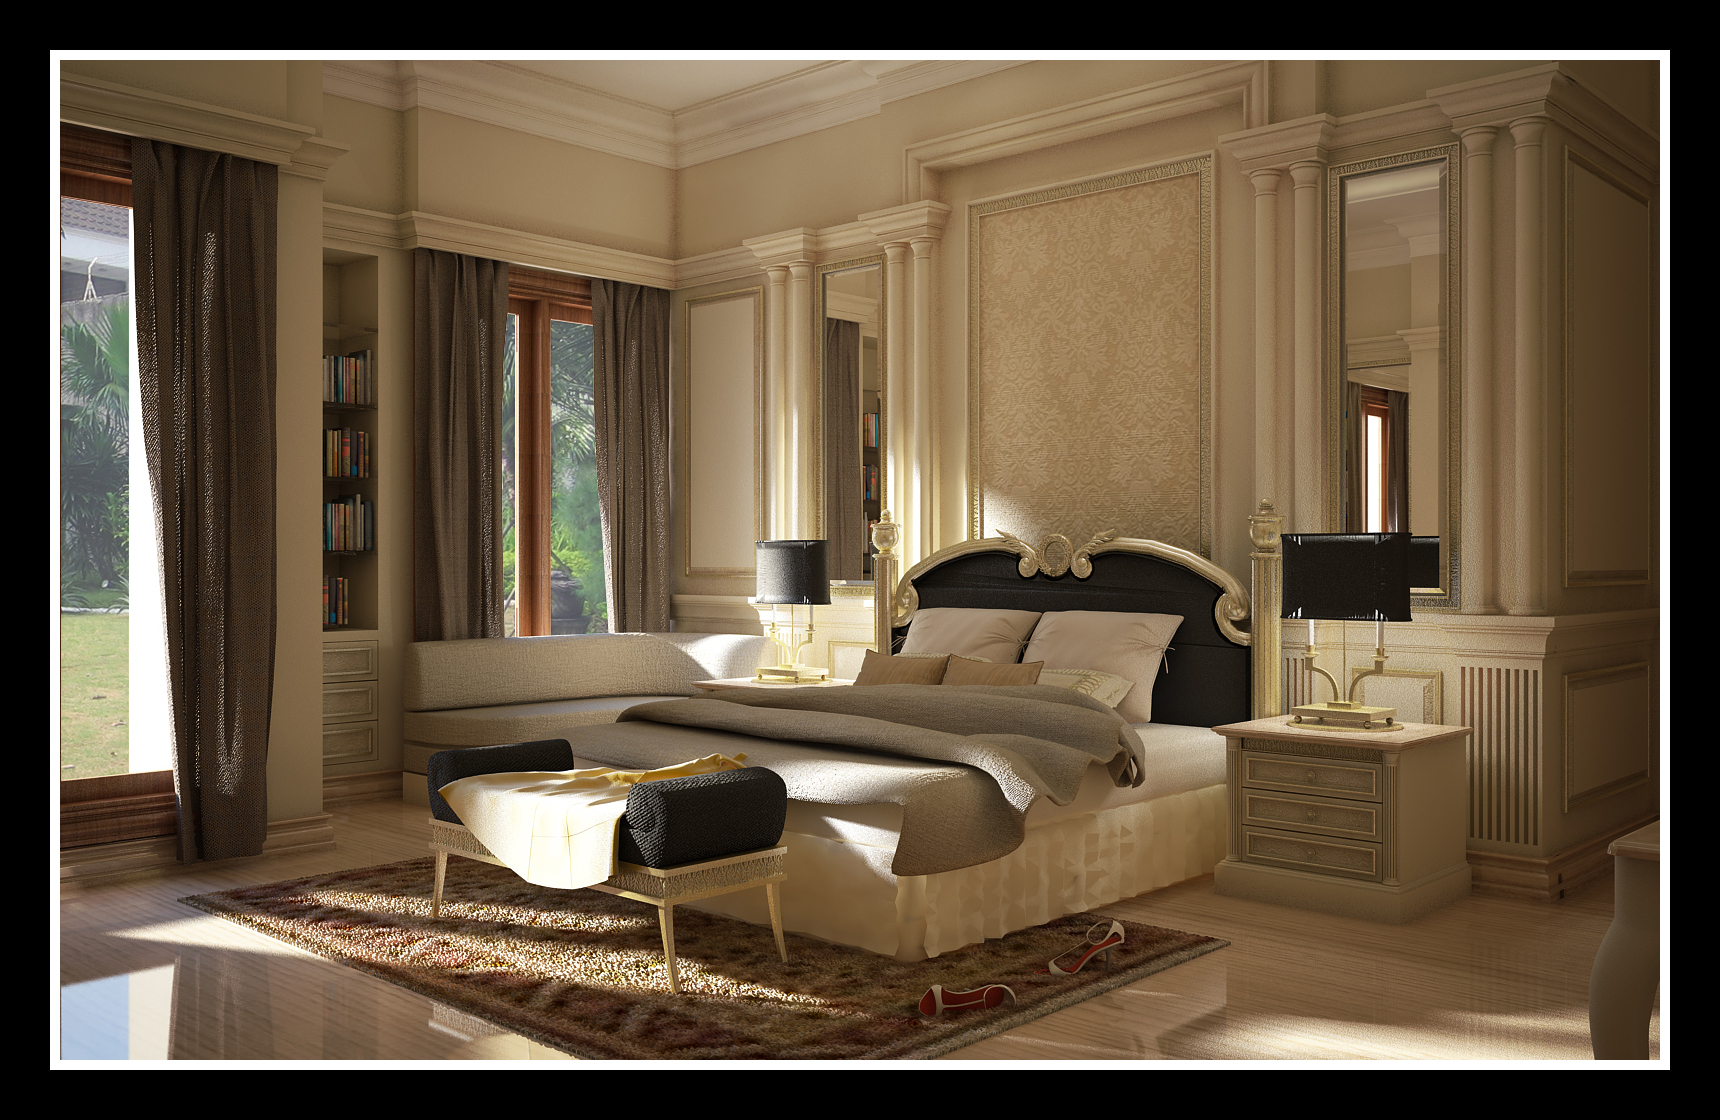 Interior design 3d home designer - Interior bedroom design ...